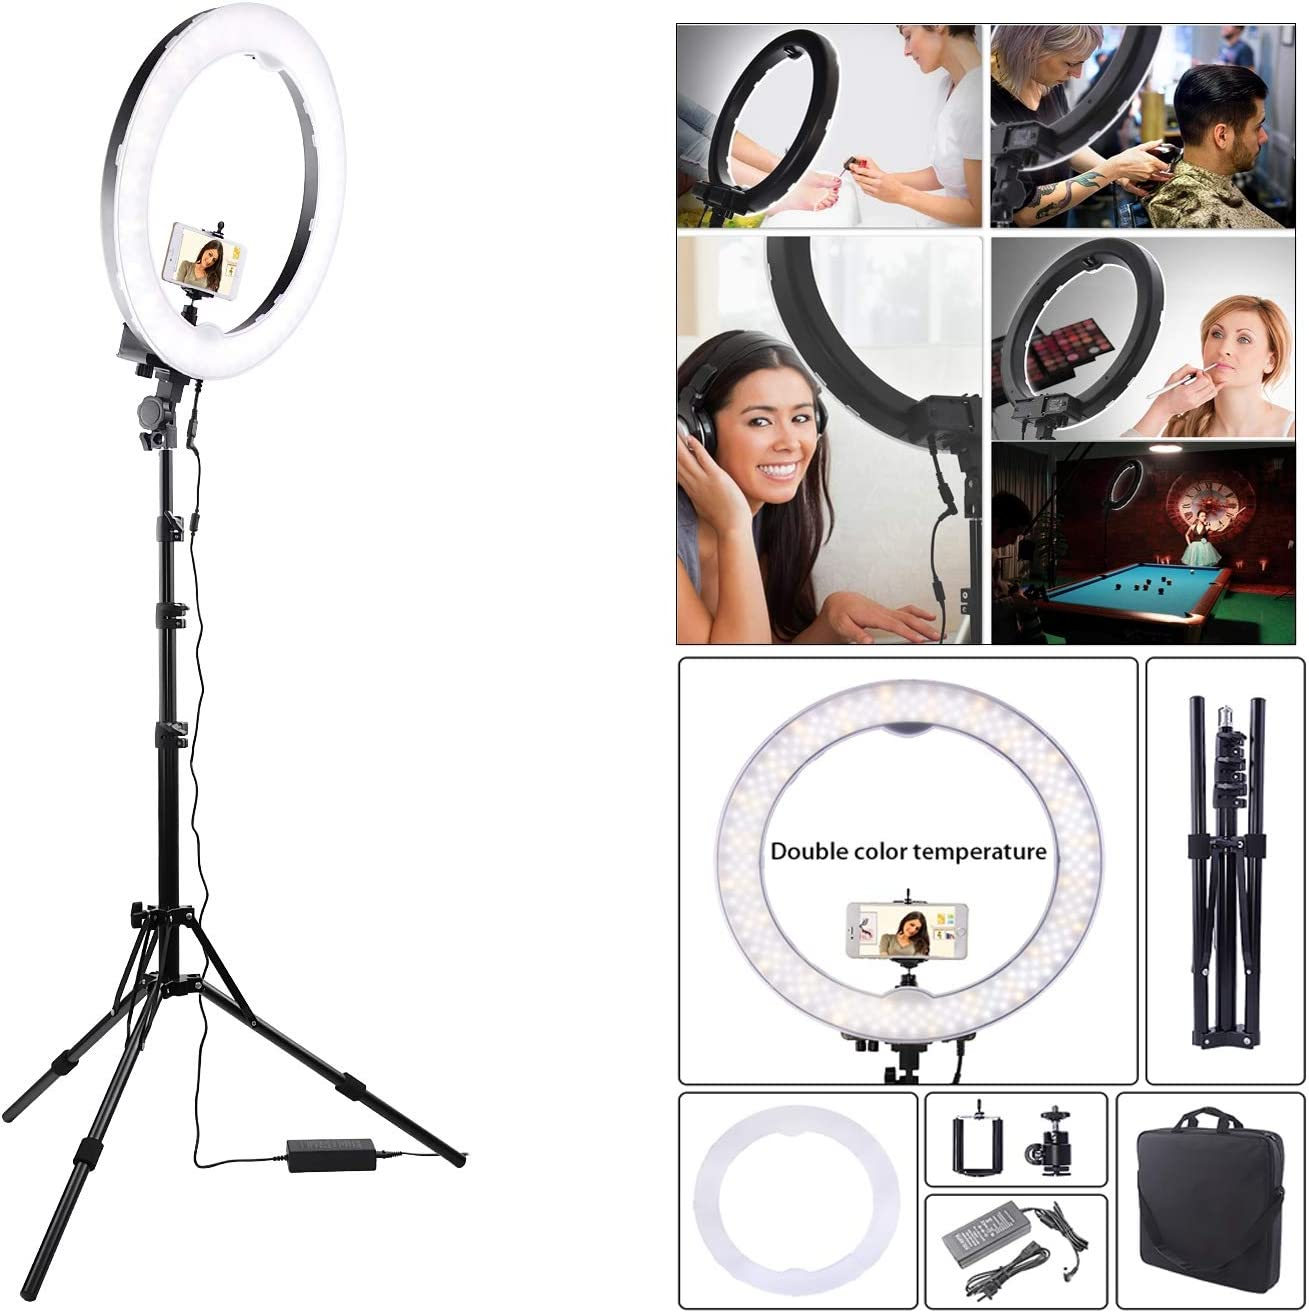 HULYZLB LED Ring LightCamera Photo Video Lightning Kit,18in Outer 55W 5500K Dimmable LED Ring Light with Stand for YouTube//Vine Self-Portrait